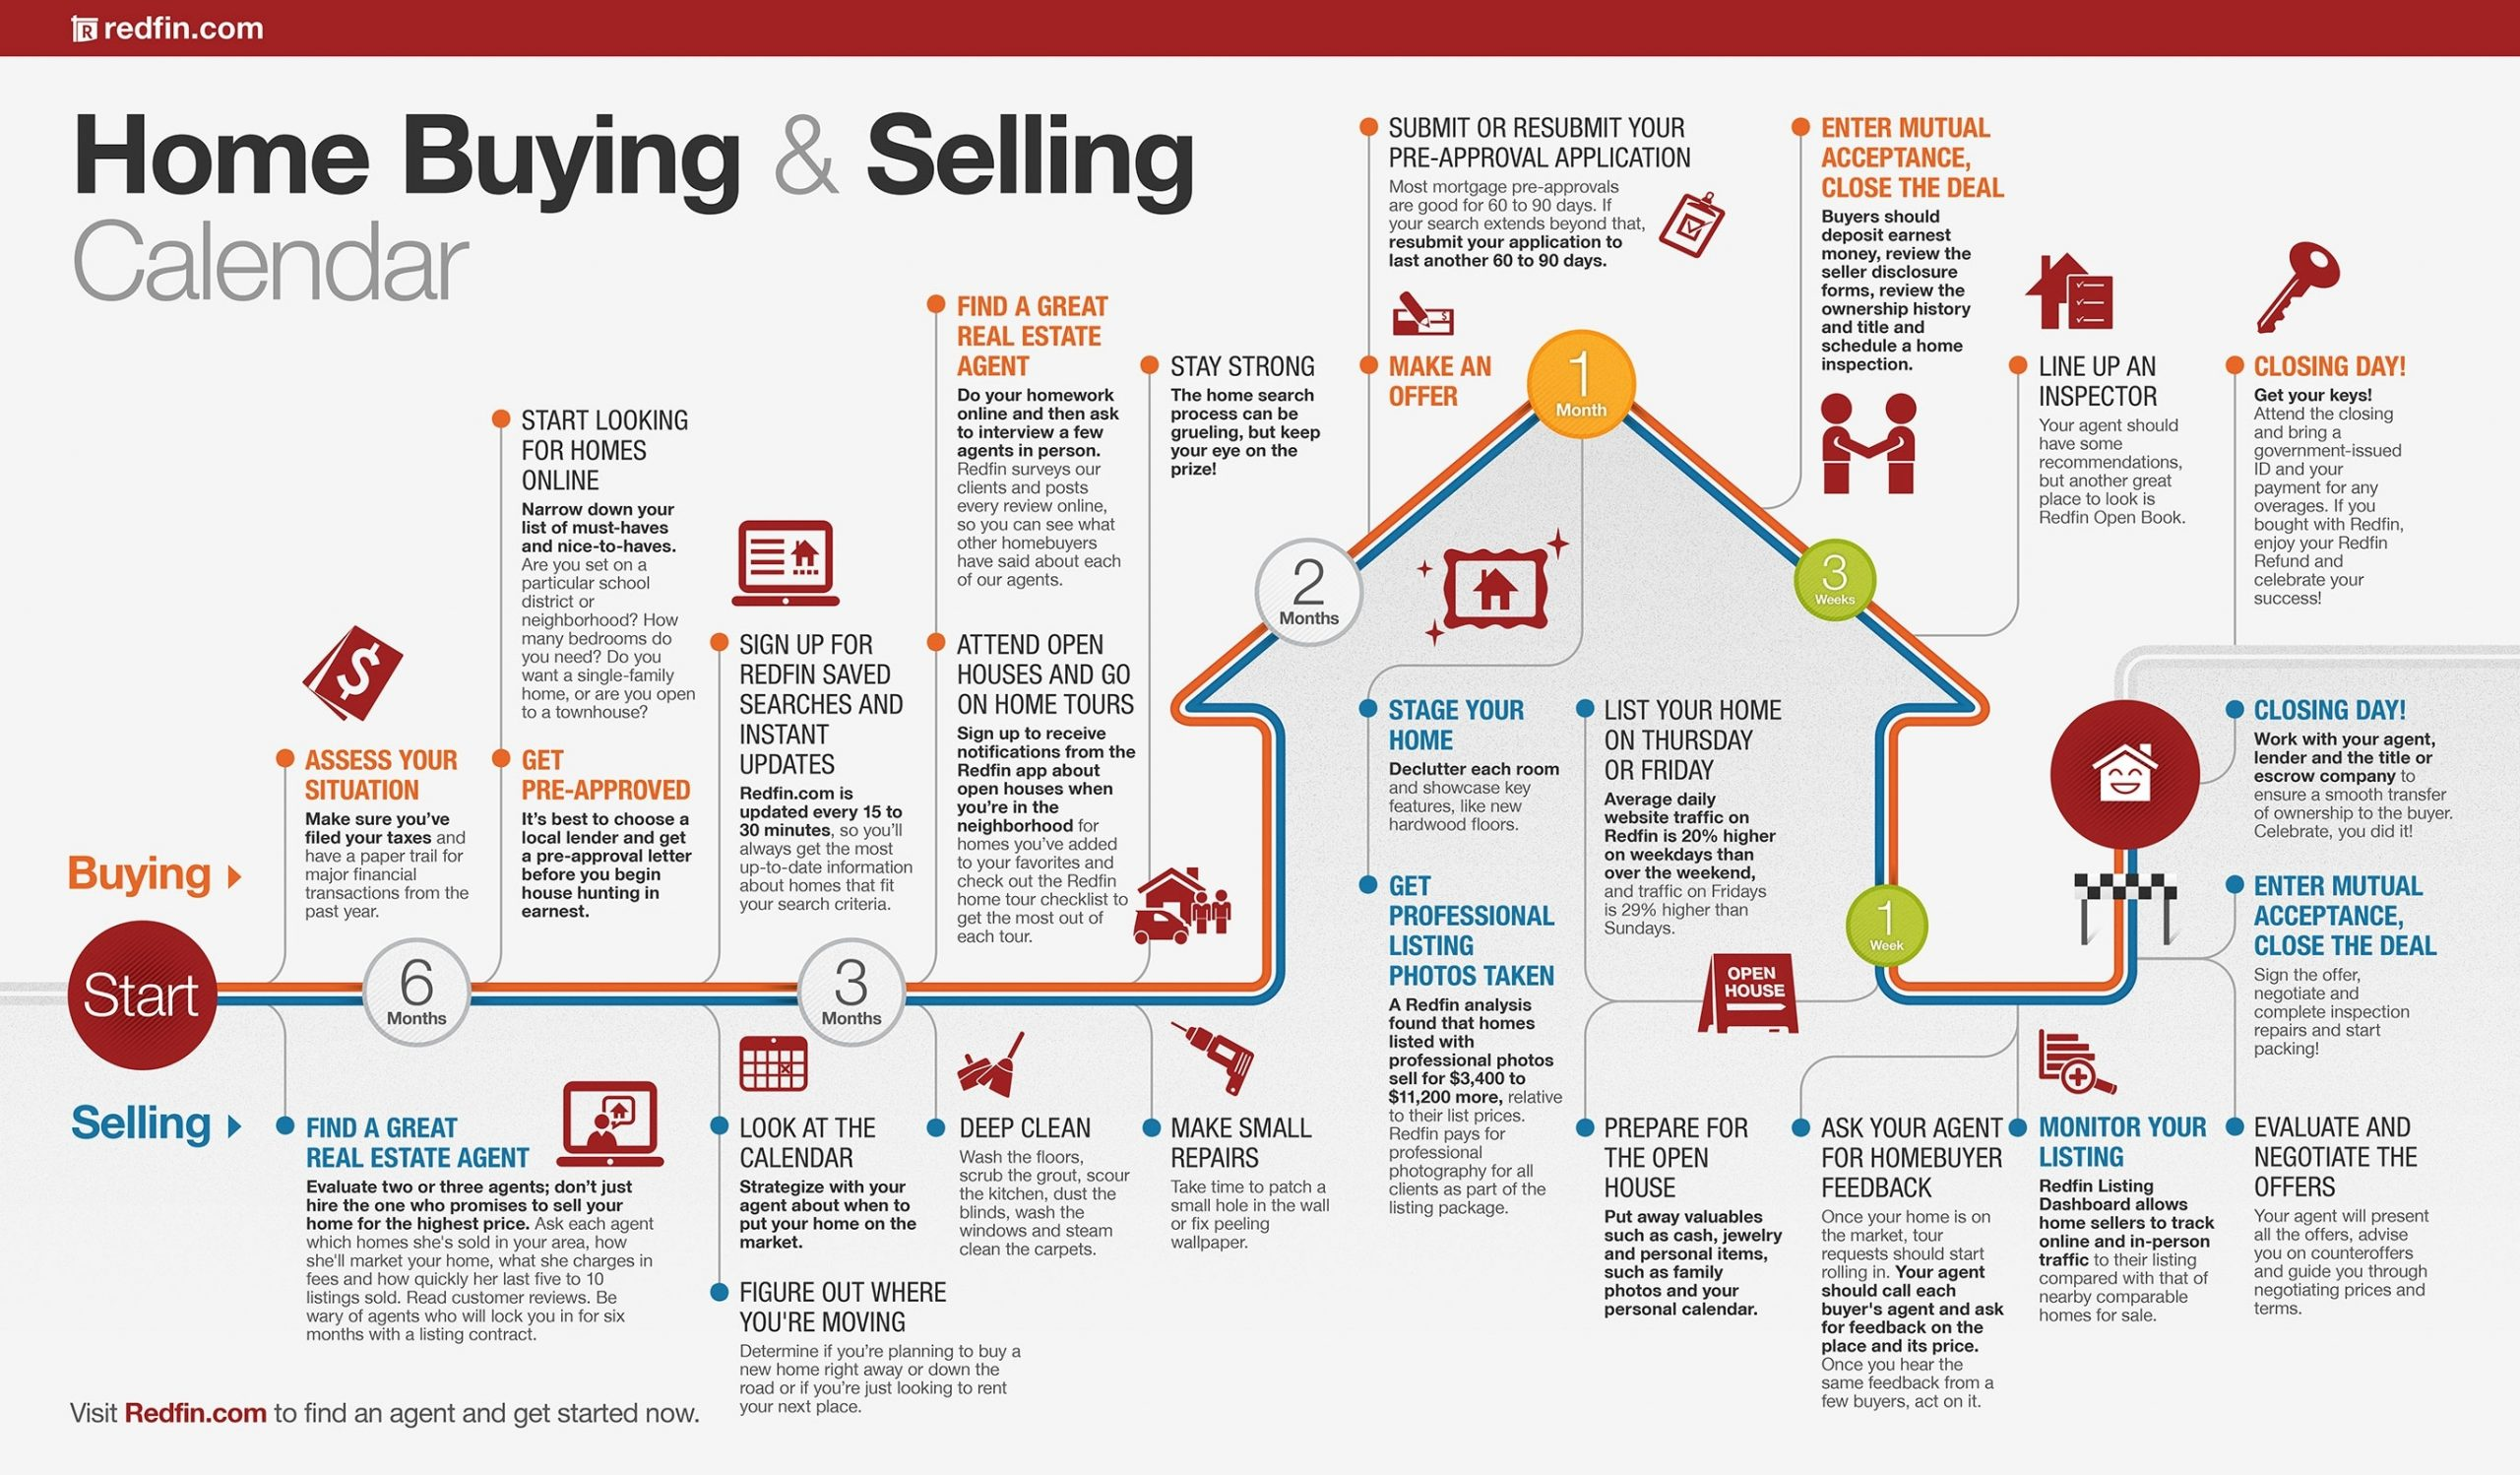 Home Buying And Selling Calendar | Visually